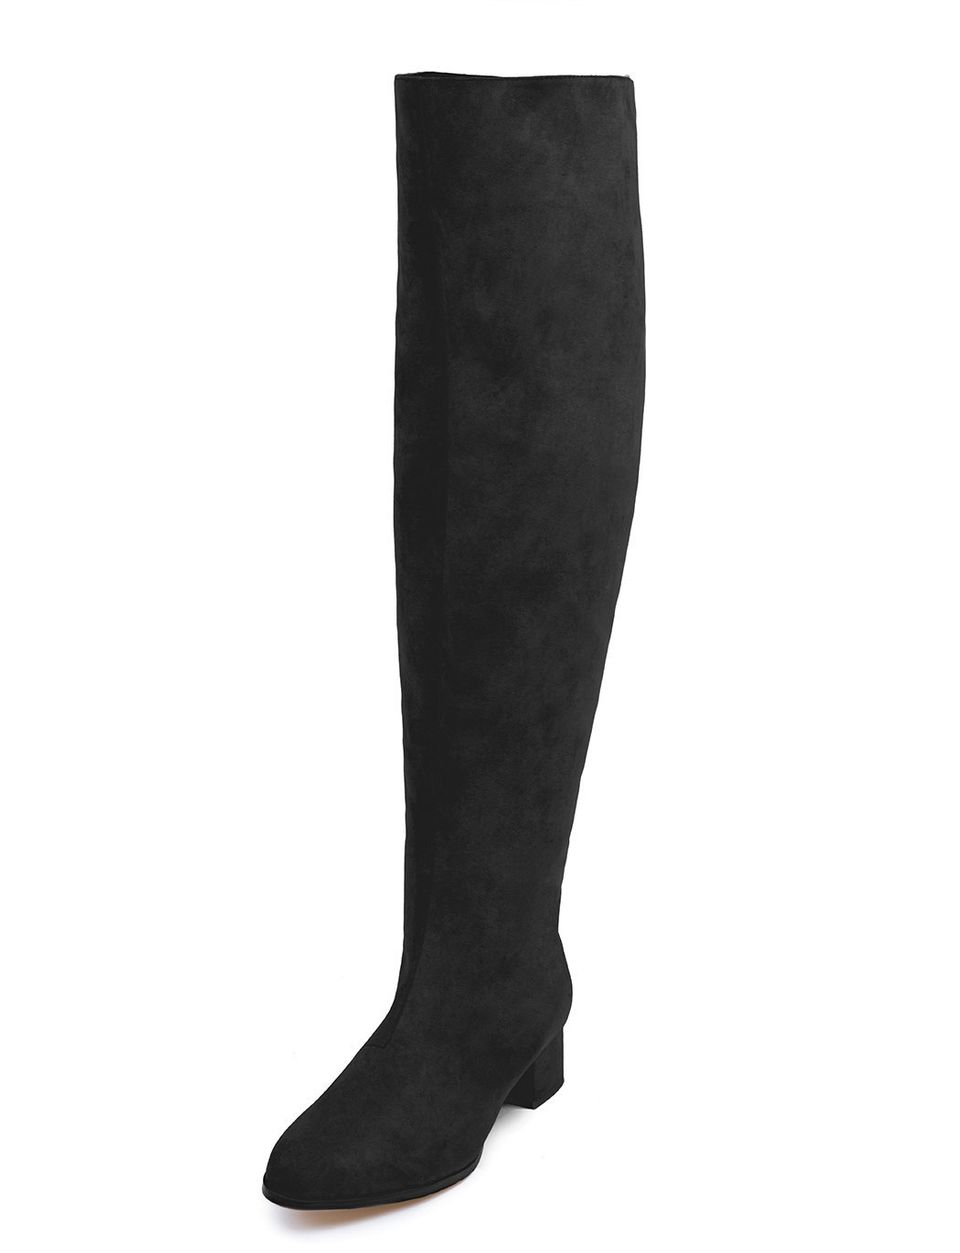 5cf65bd2d6a Over-The-Knee Boots That'll Actually Fit Women With Big Calves ...